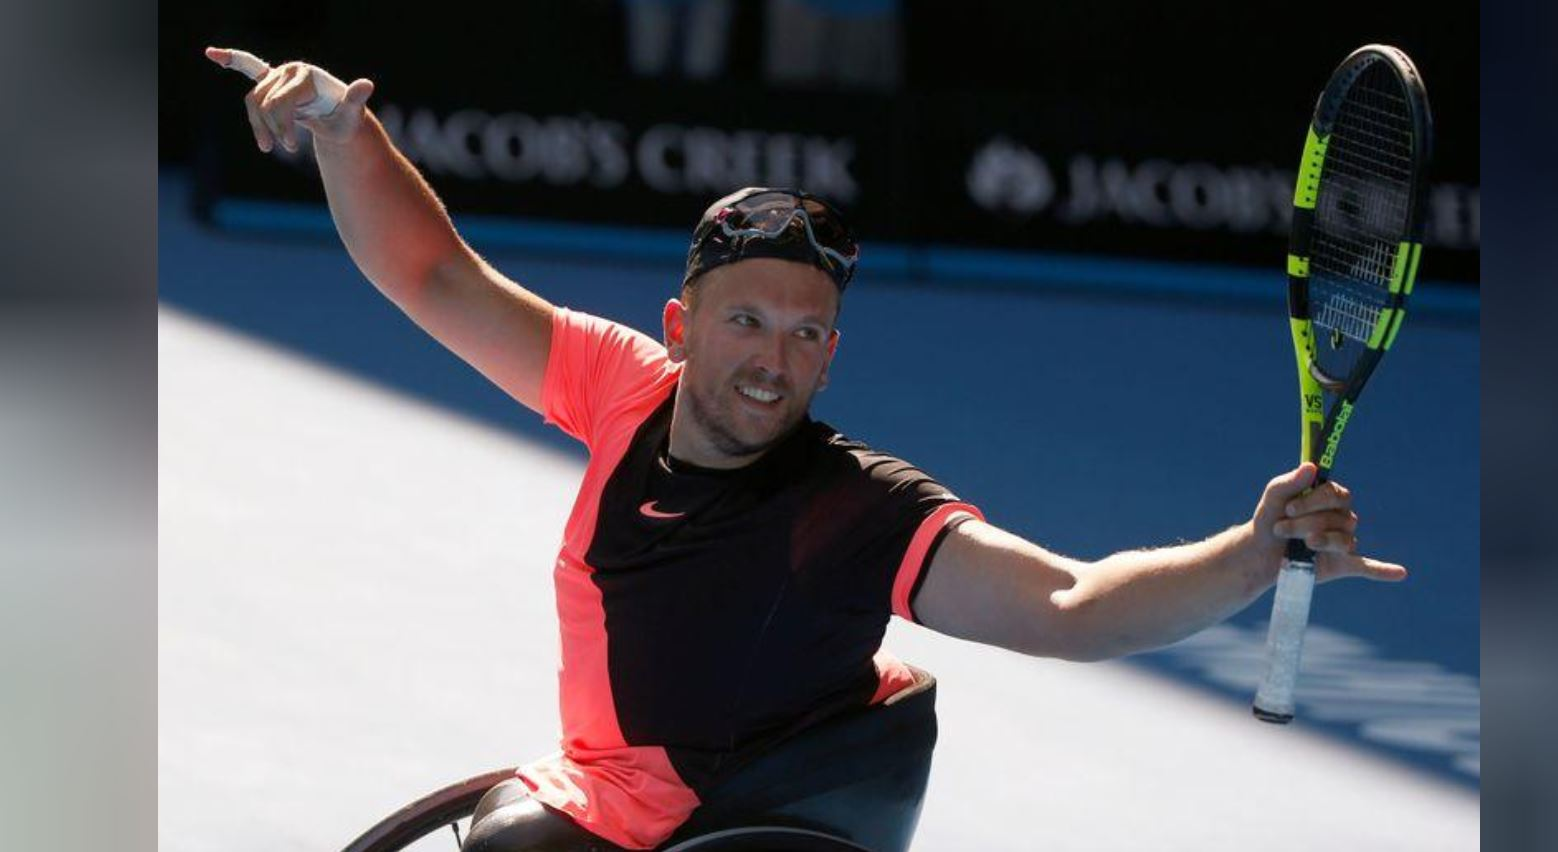 US Open to hold wheelchair event after player backlash